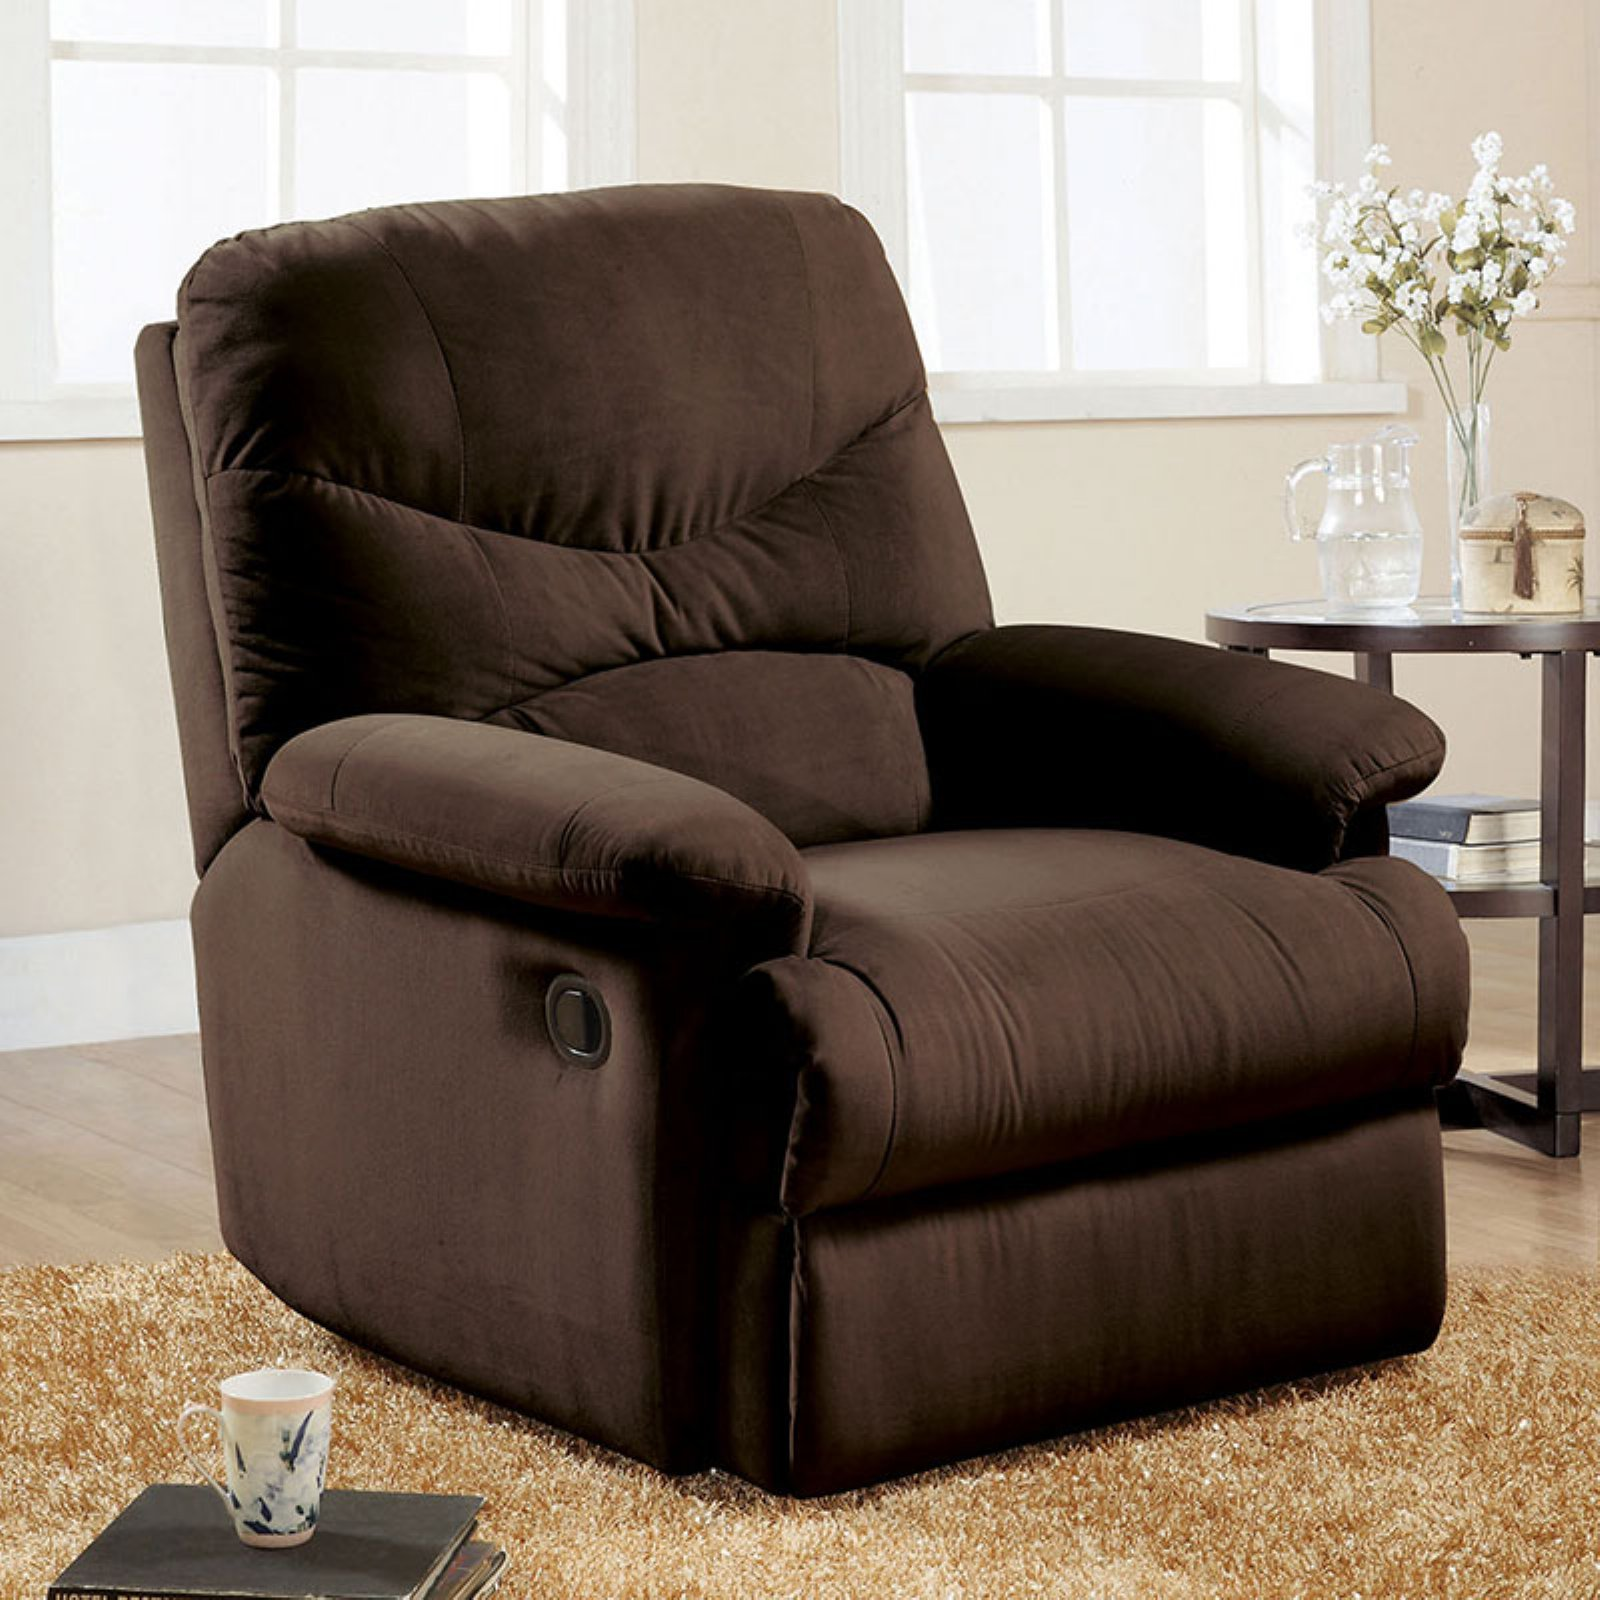 ACME Arcadia Glider Recliner, Chocolate Microfiber by Acme Furniture